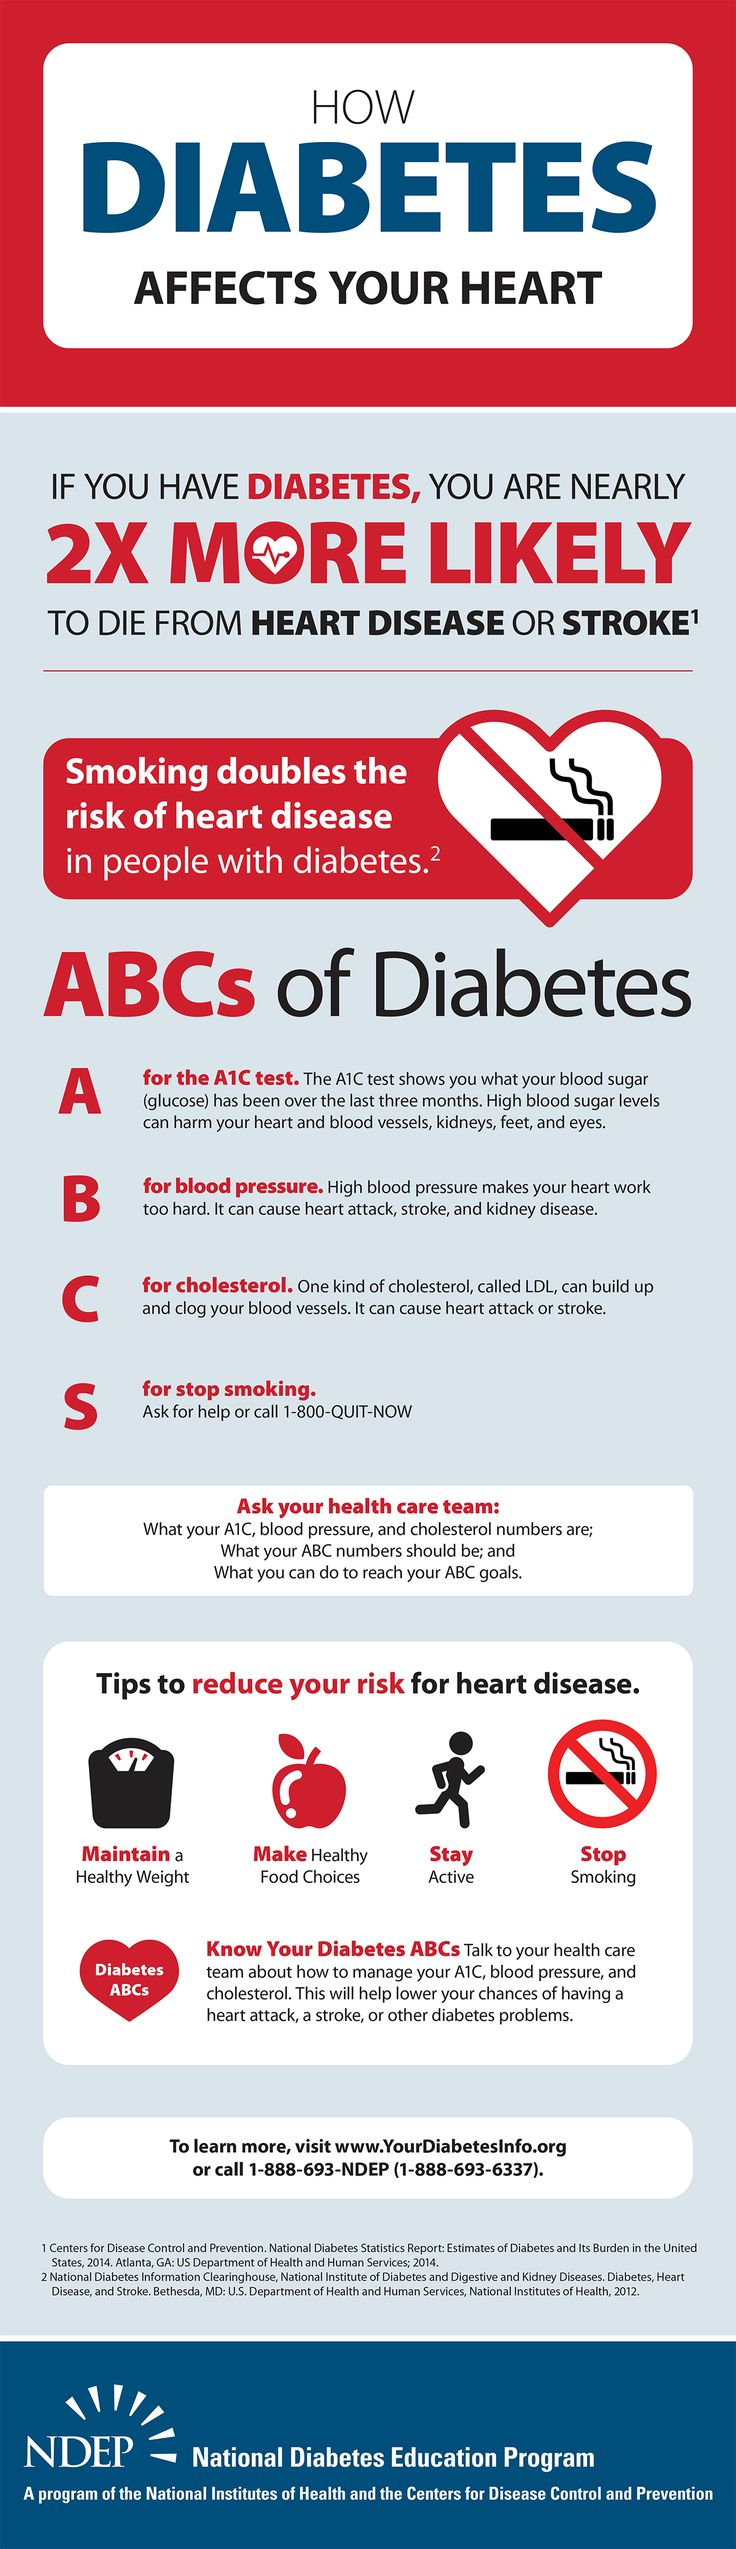 "NDEP's ""How Diabetes Affects Your Heart"" infographic explains the ABCs of diabetes—the A1C test, Blood Pressure, Cholesterol and Stop Smoking— and how diabetes affects your heart (also available in Spanish)."